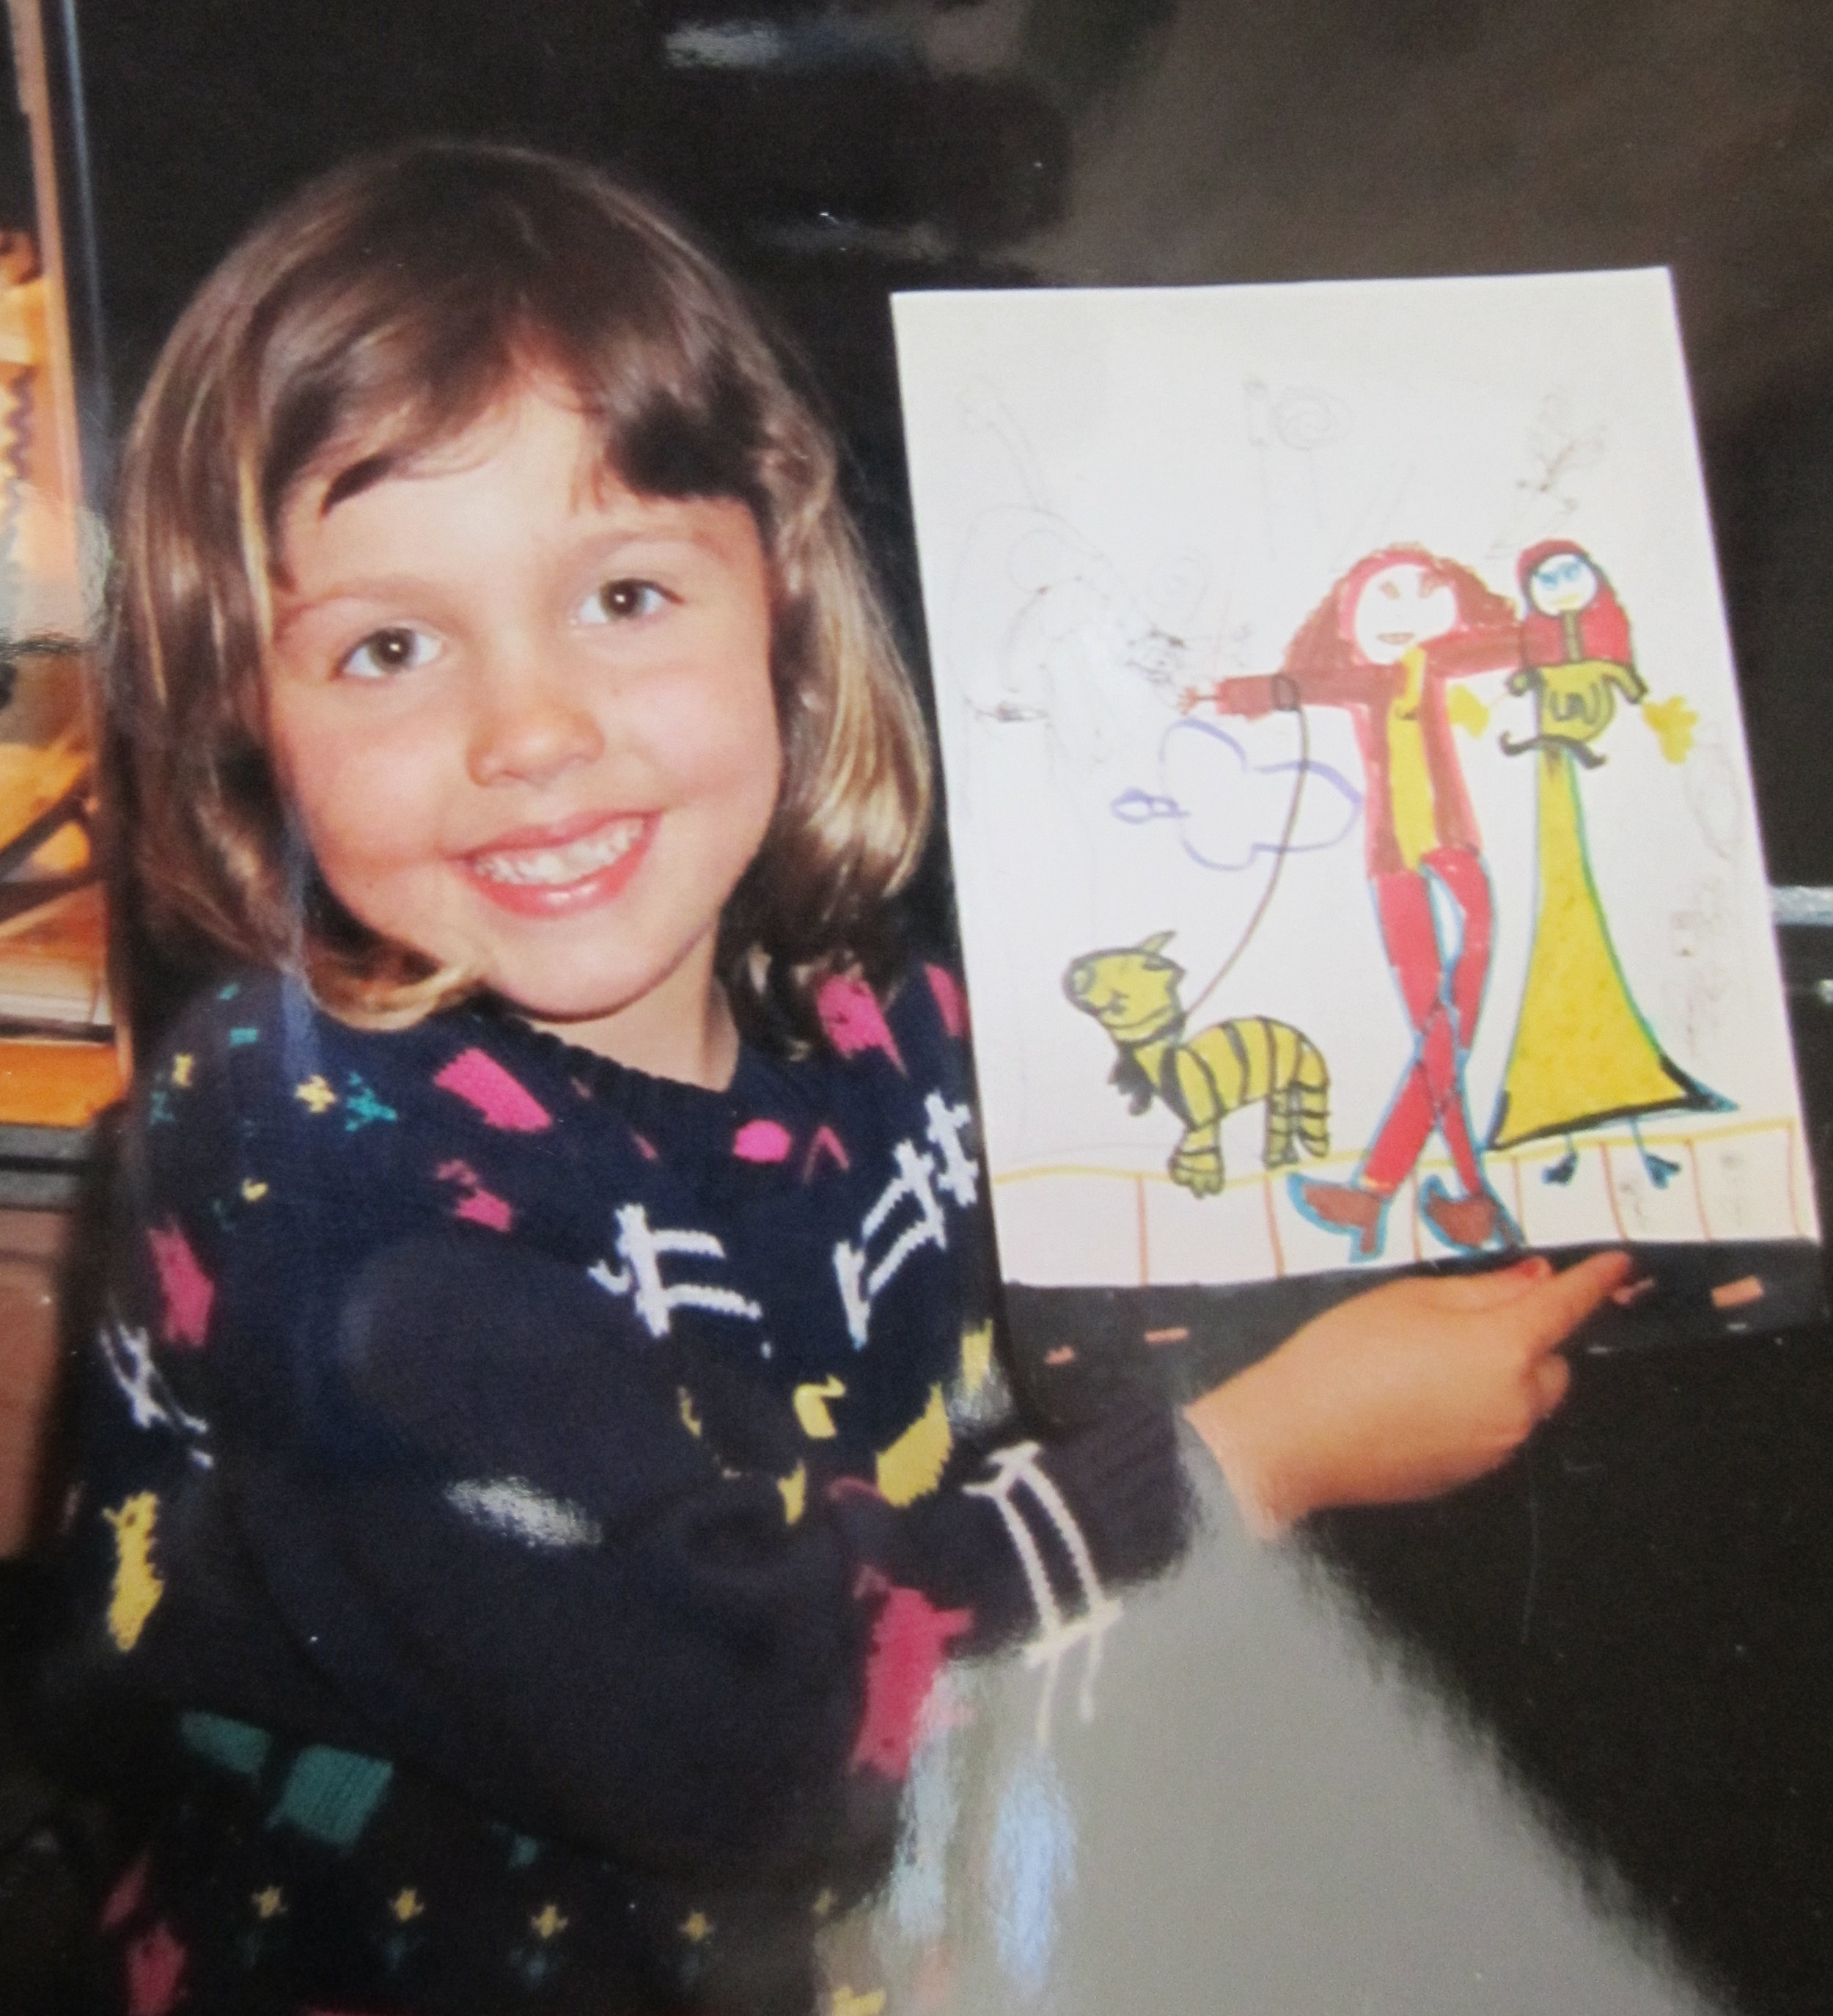 5 years old and not a clue art was just my little oasis that I rarely let the world know that much about.